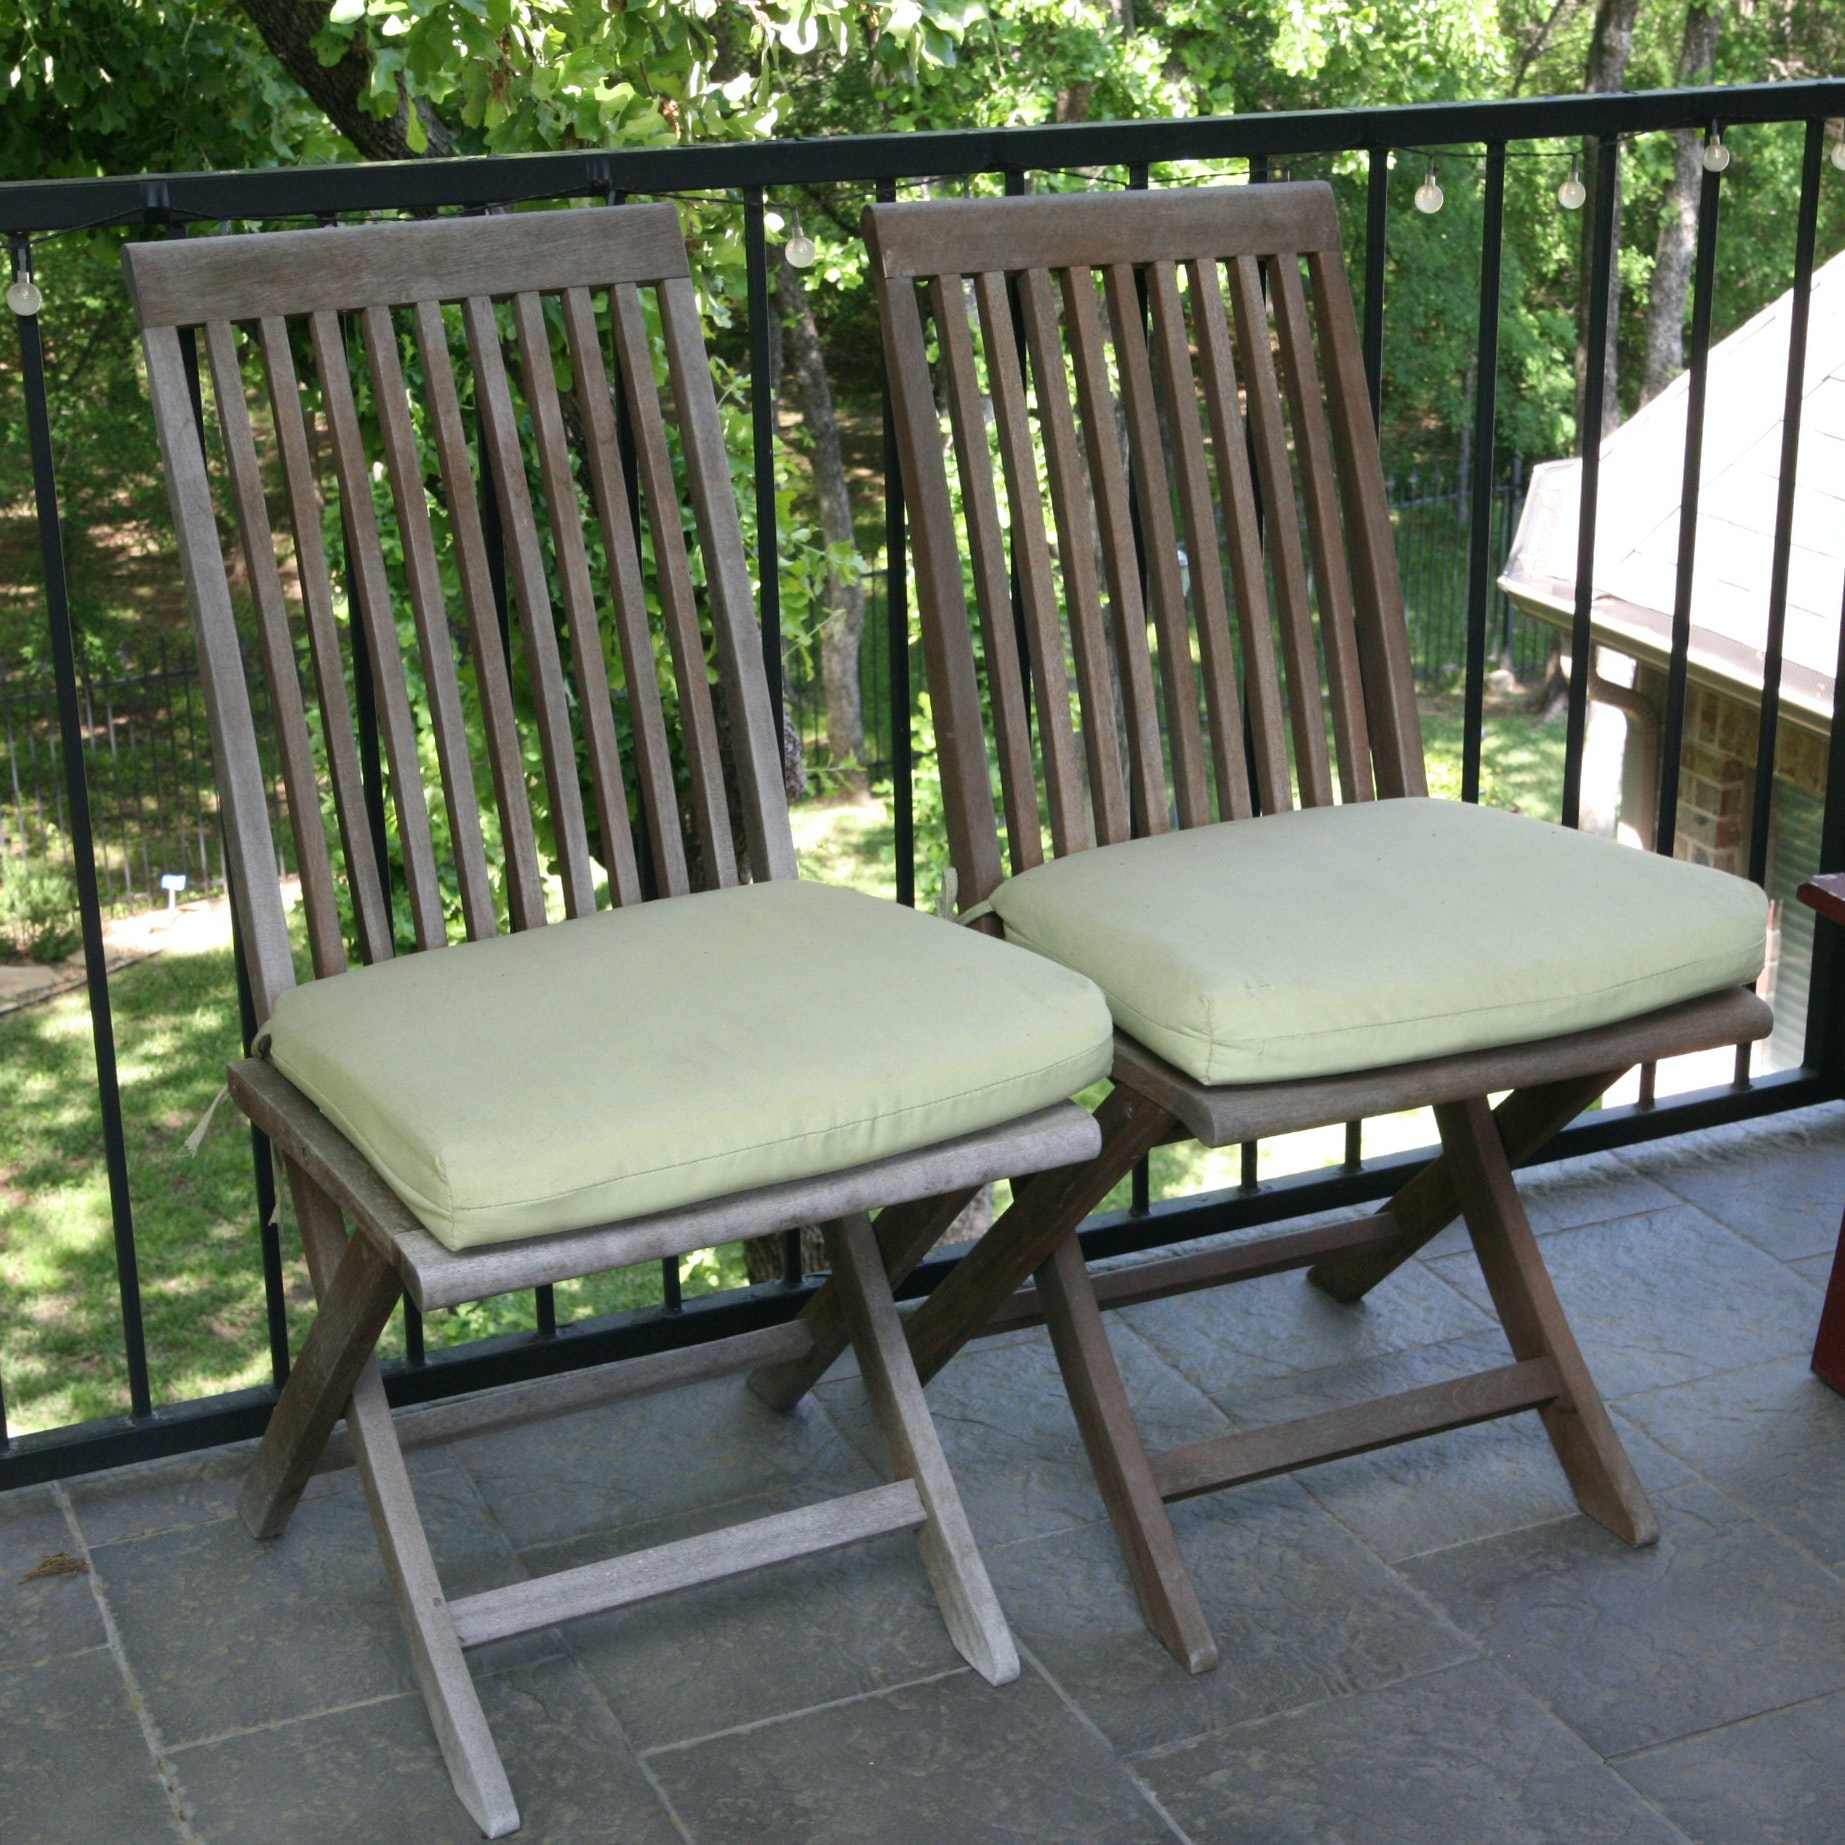 Pair of Outdoor Wood Folding Chairs